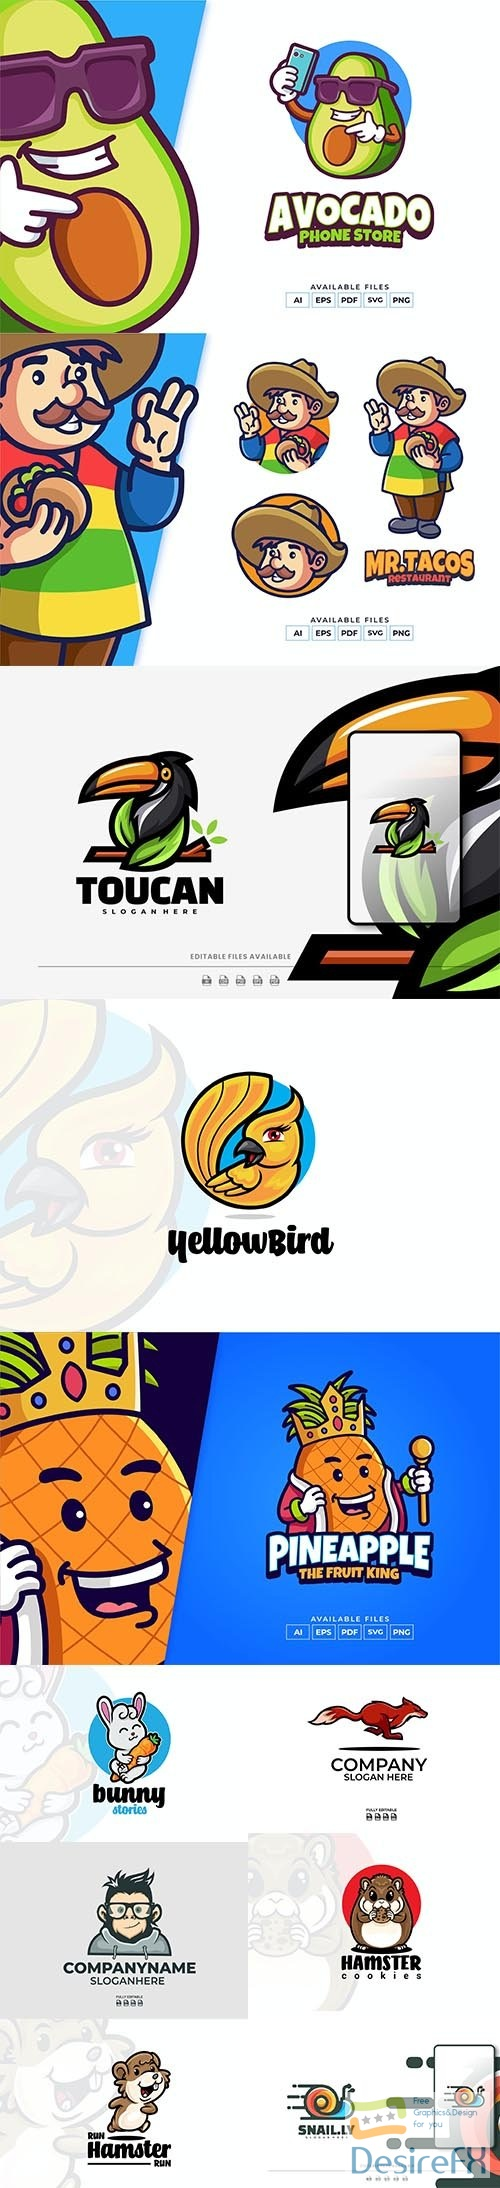 Colorful logo collection 2021 Vol 8